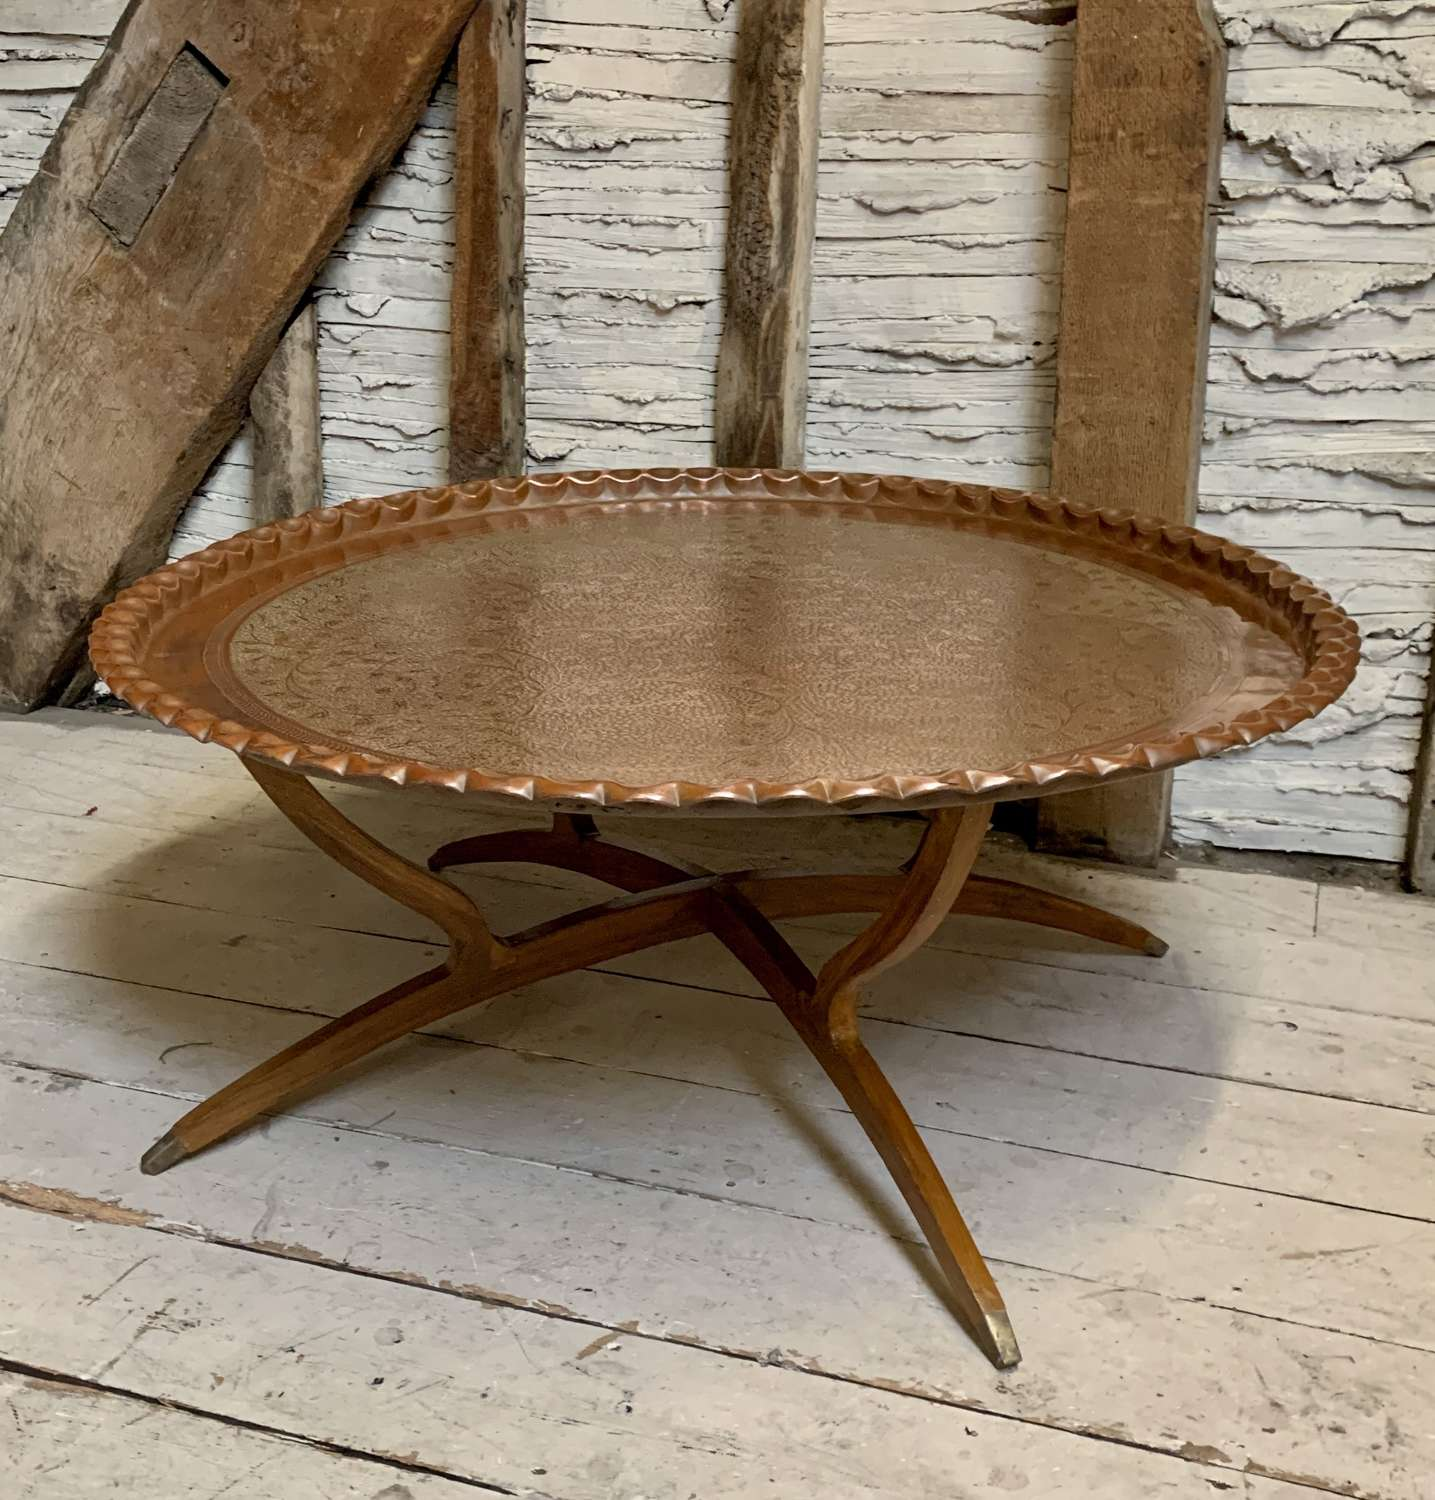 Huge Indo-Persian Engraved Copper Tray Table